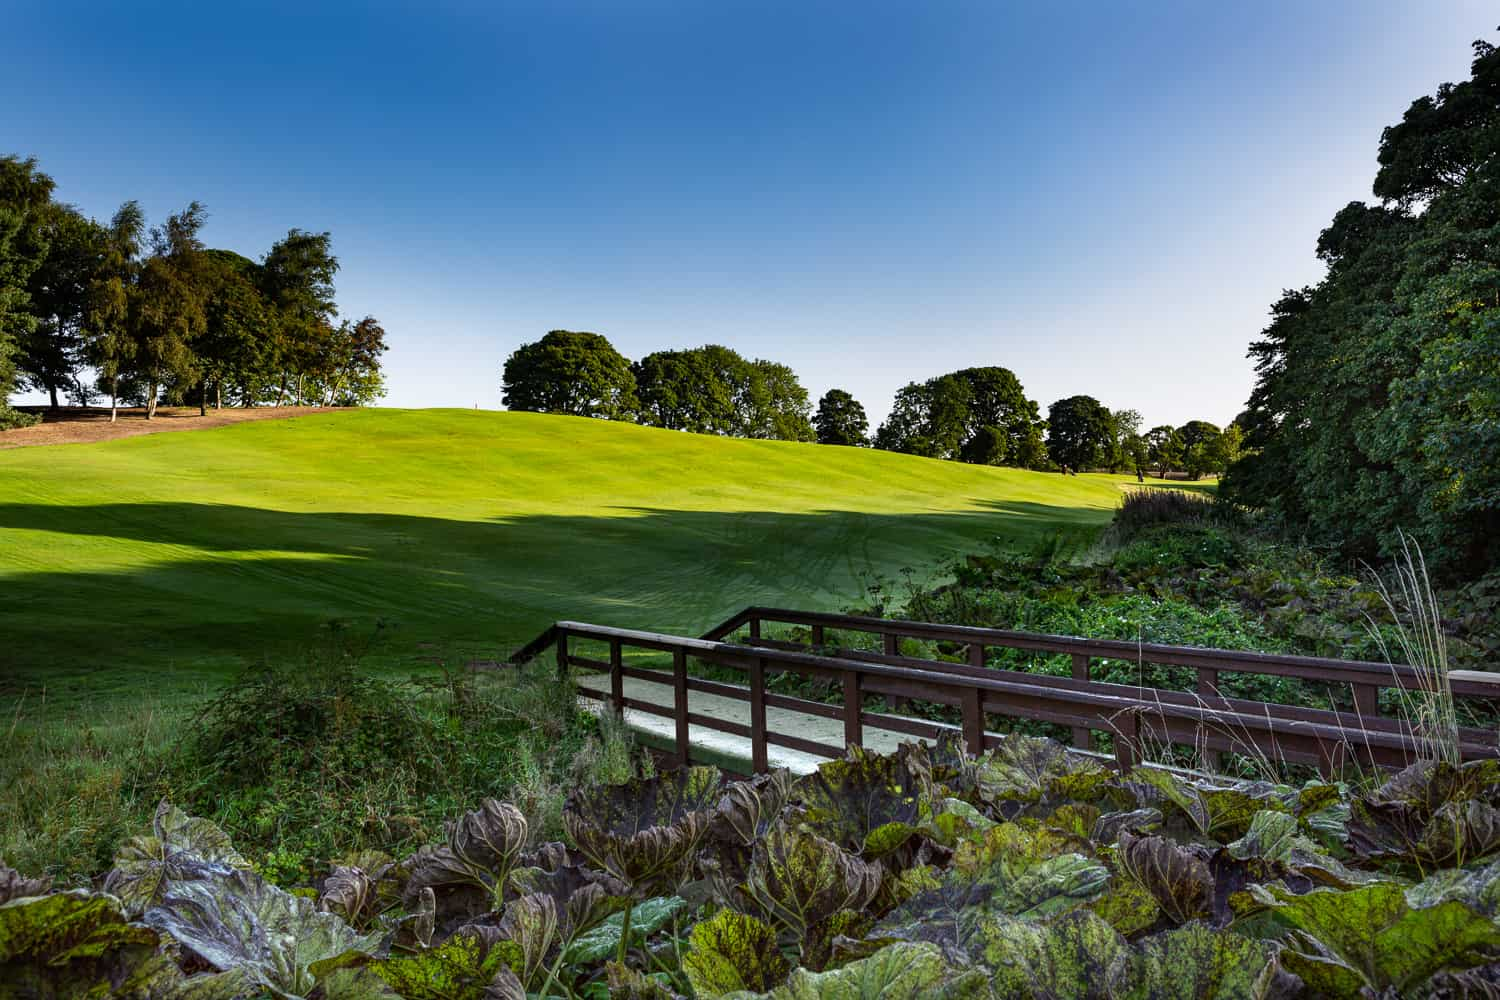 Uphall_Golf_Club_Course_Images (2 of 32)